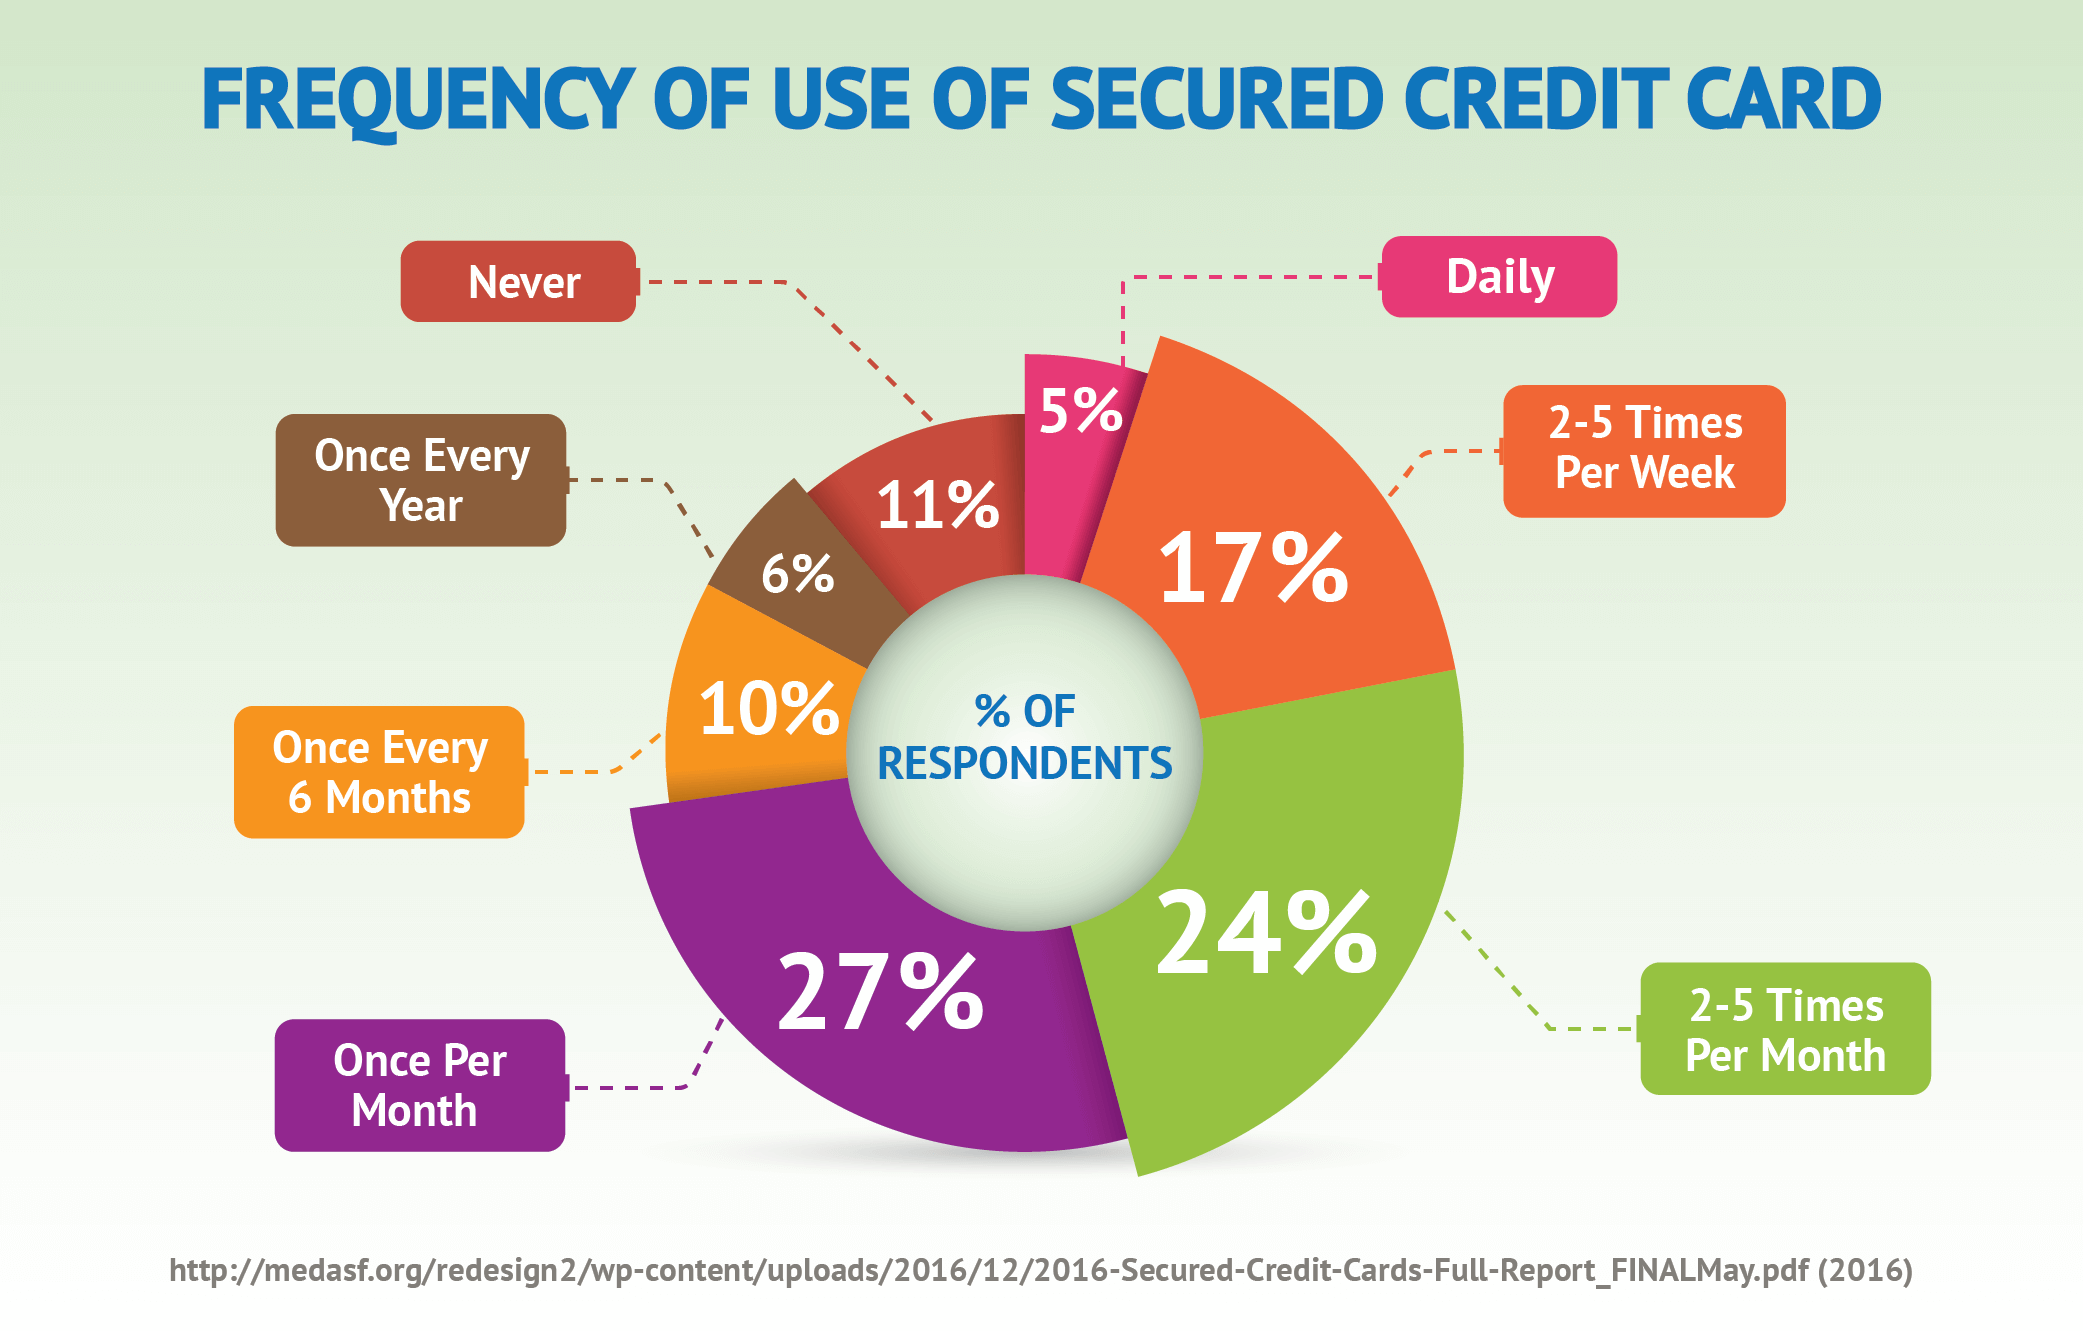 Frequency of Use of Secured Credit Card